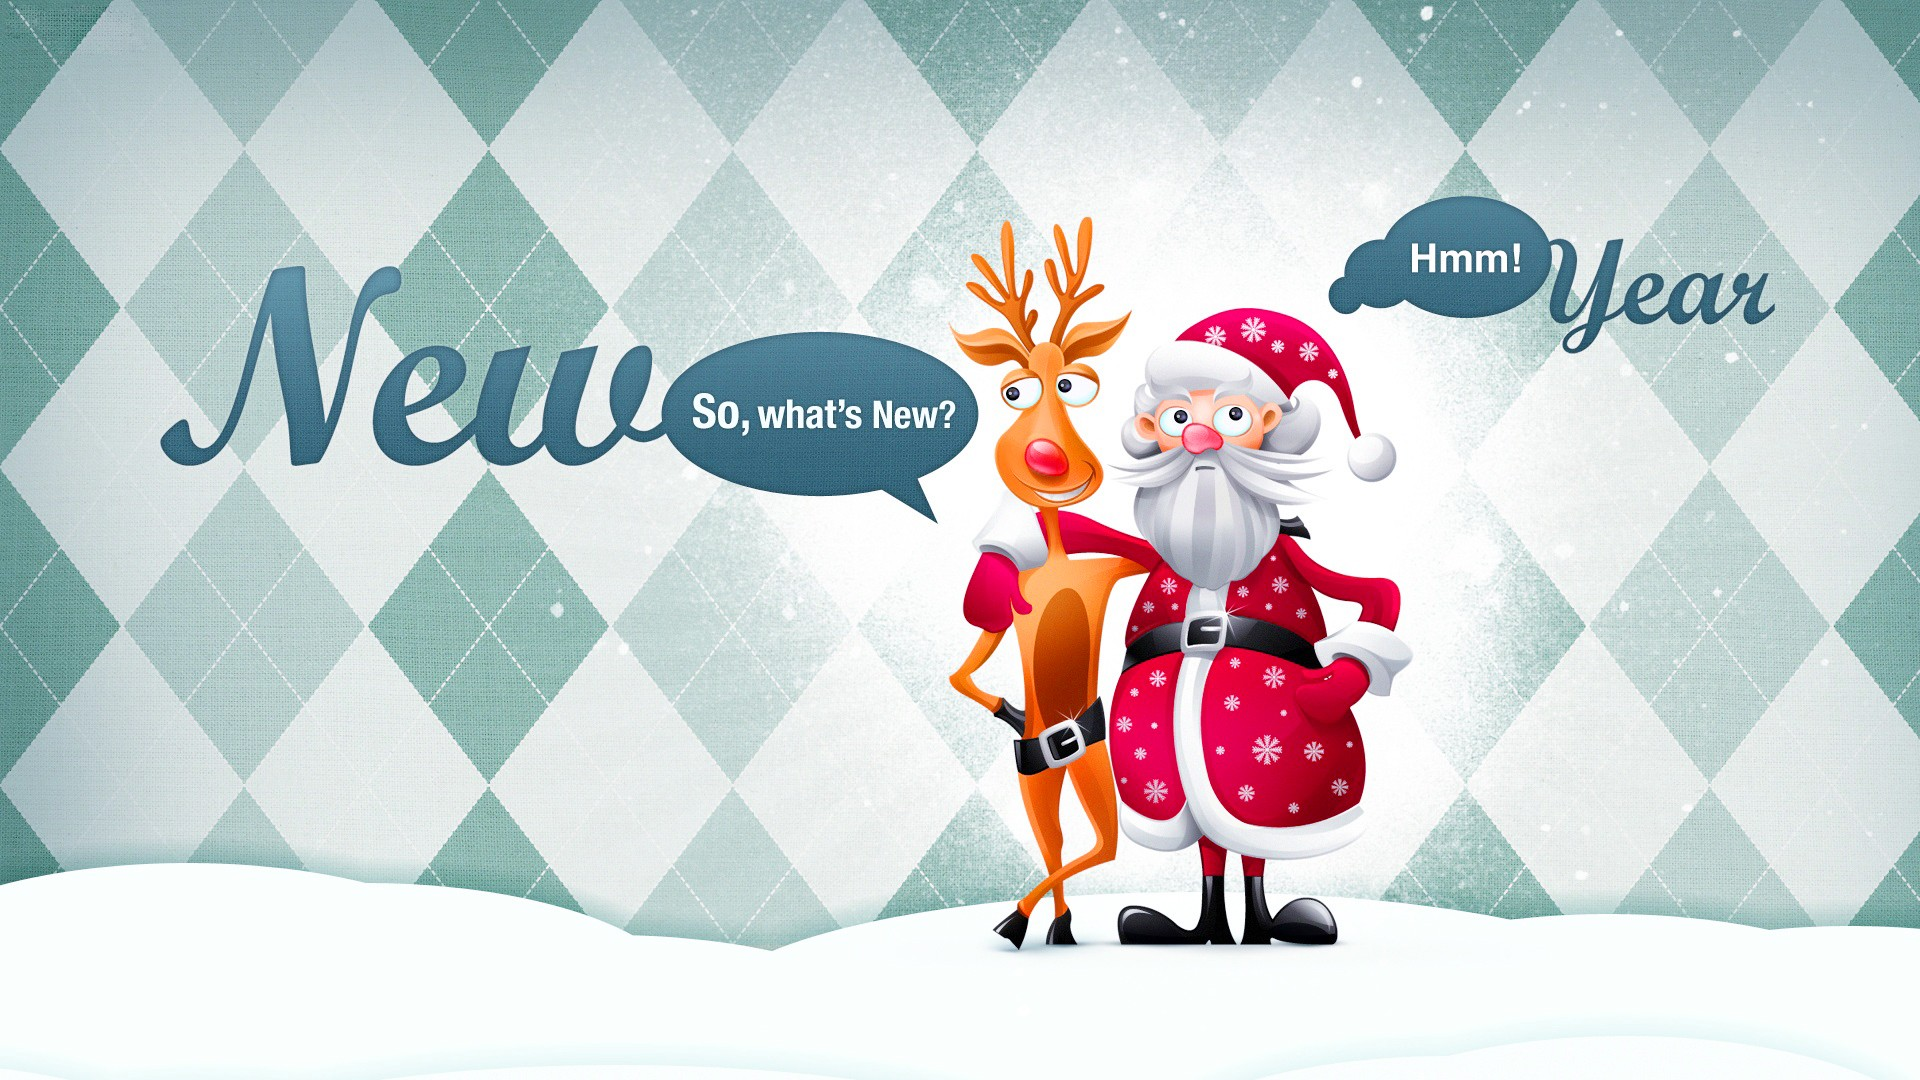 Santa New Year 2016 Wishes Wallpaper   New HD Wallpapers 1920x1080